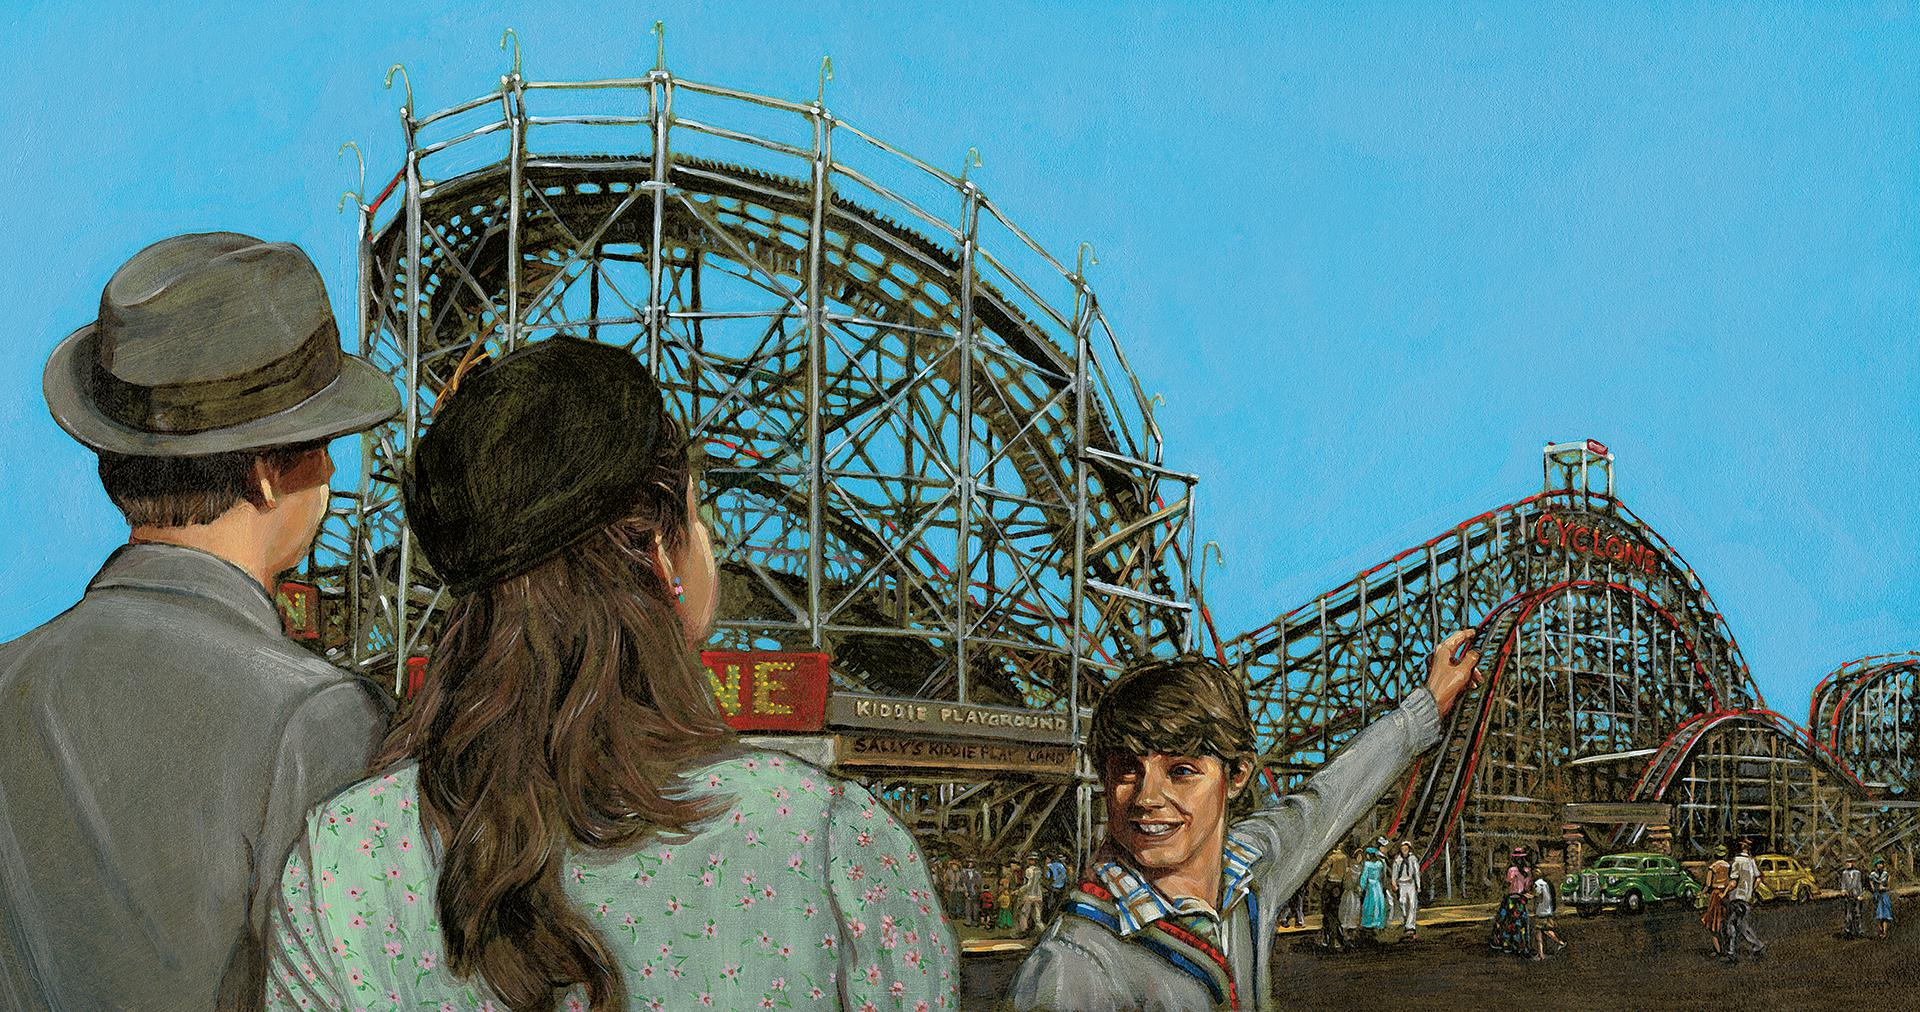 Arriving at ConeyIsland